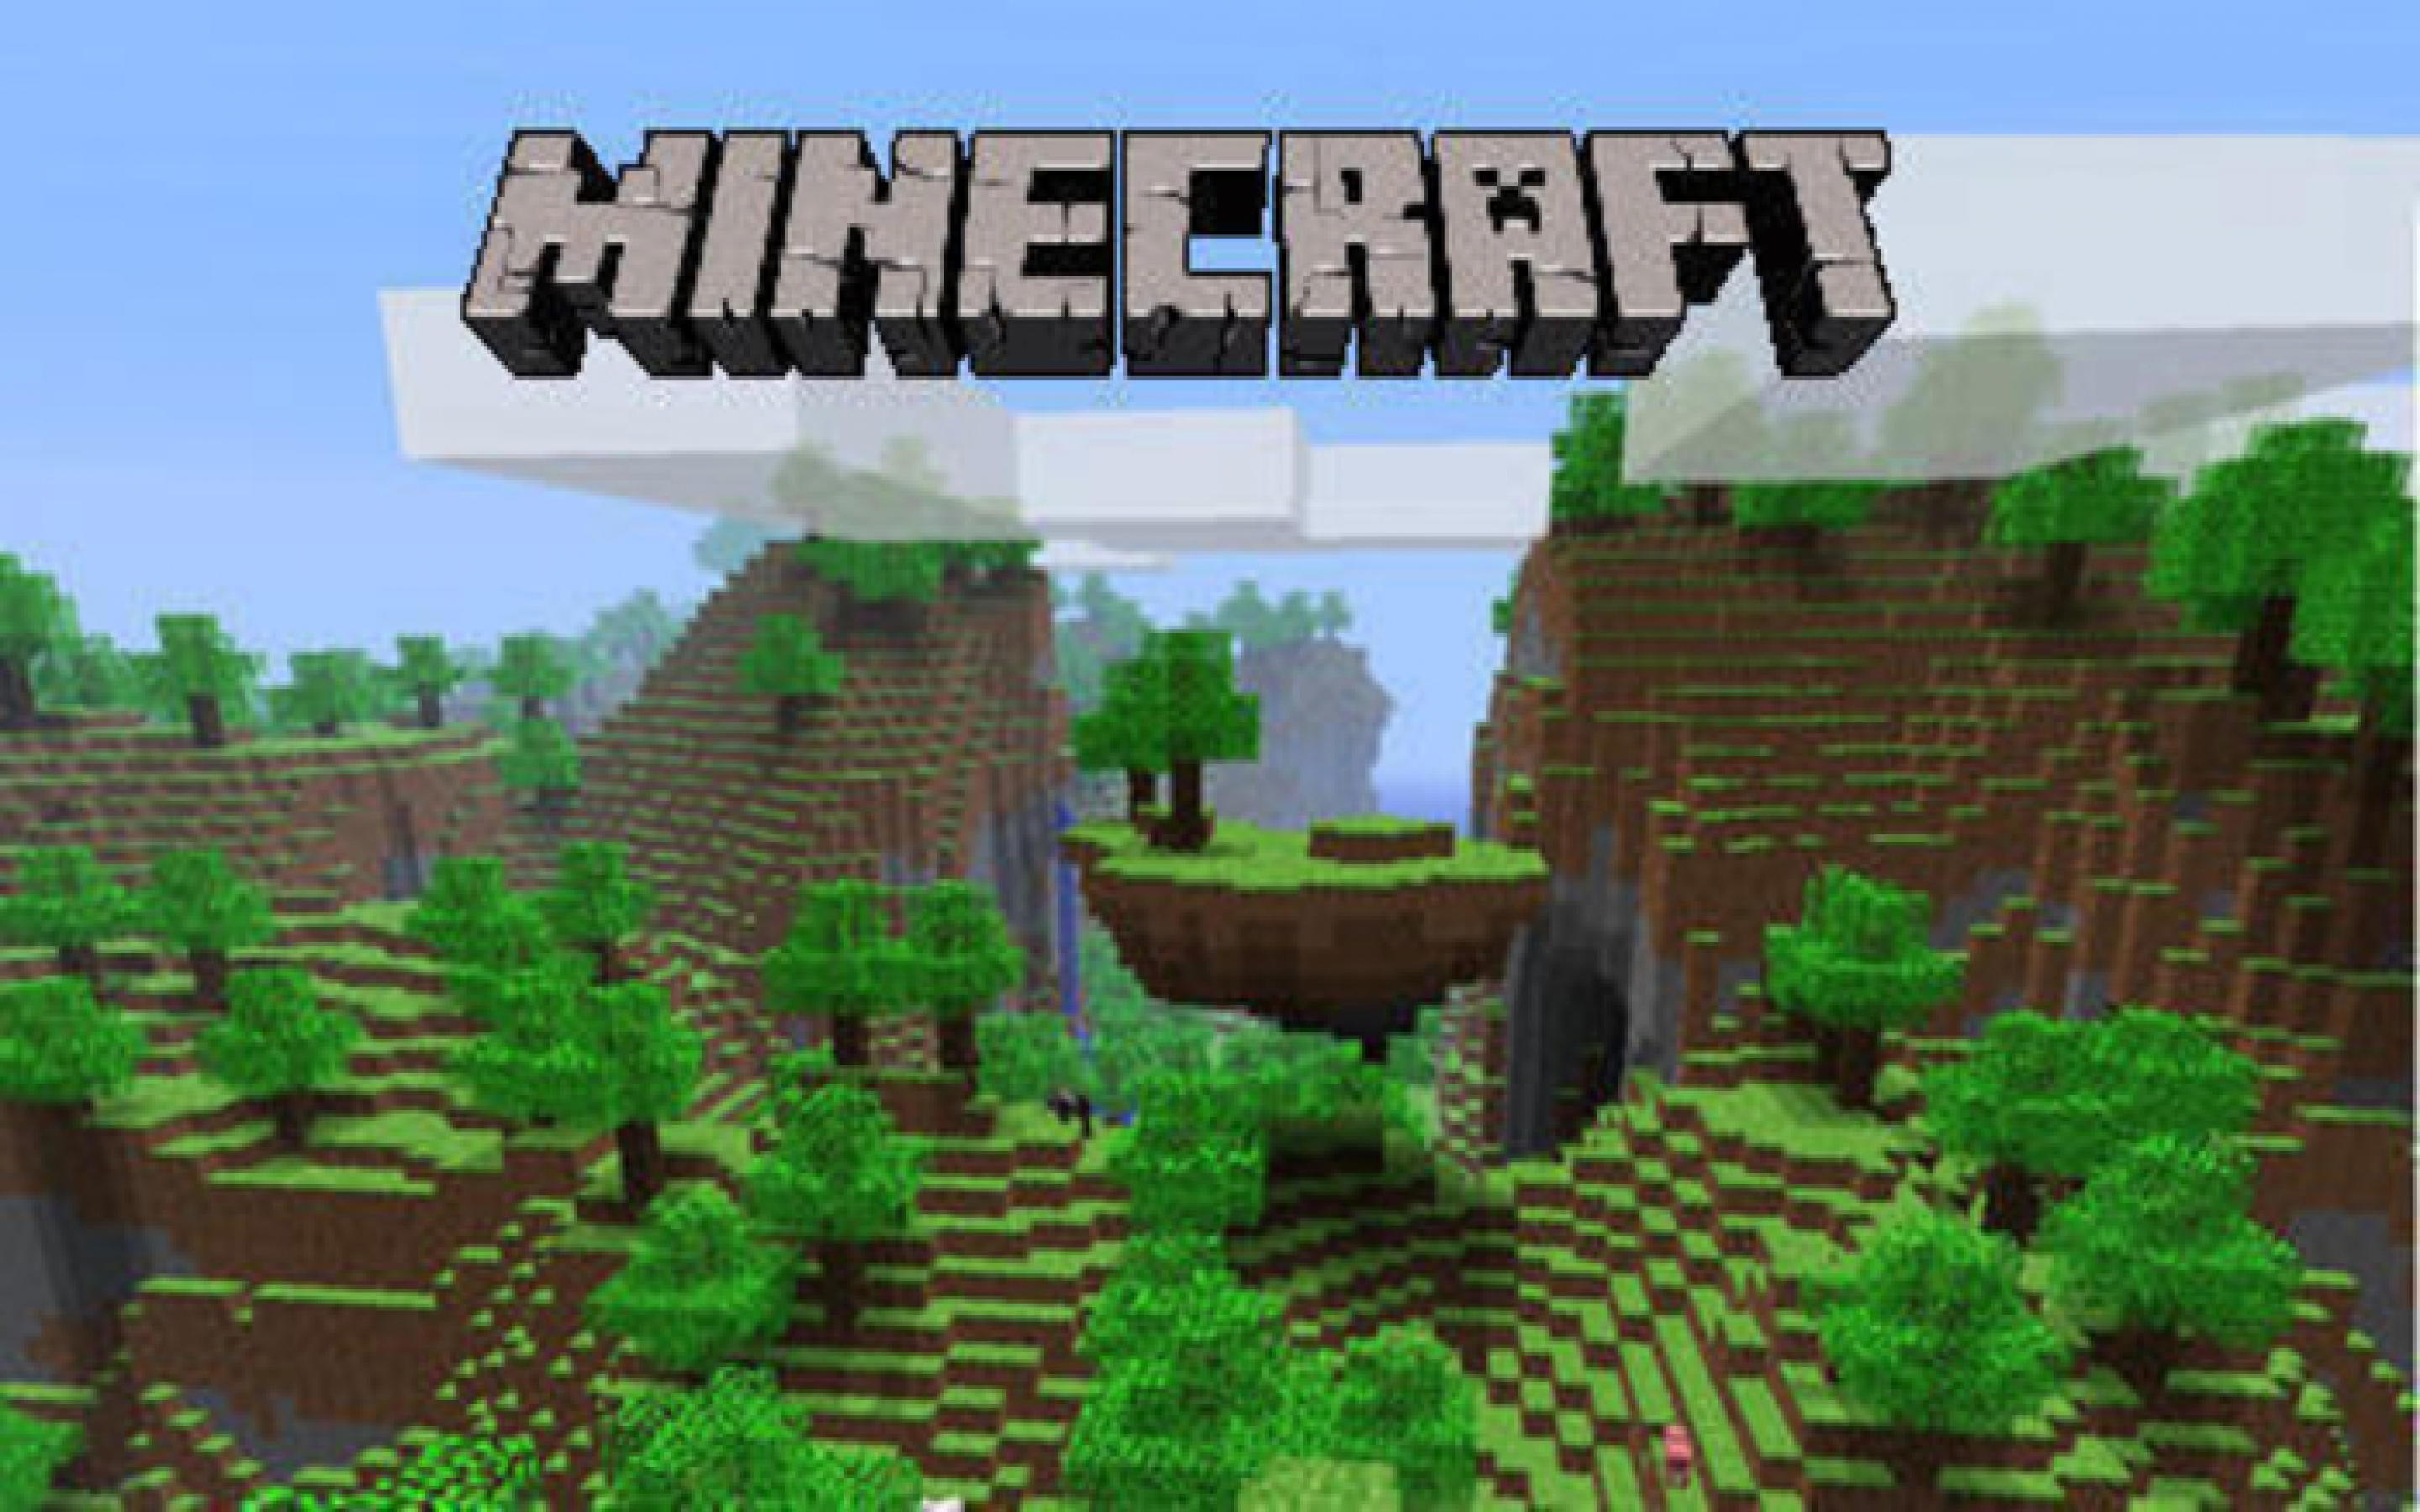 Turkey's 'family' ministry wants to ban Minecraft -- just